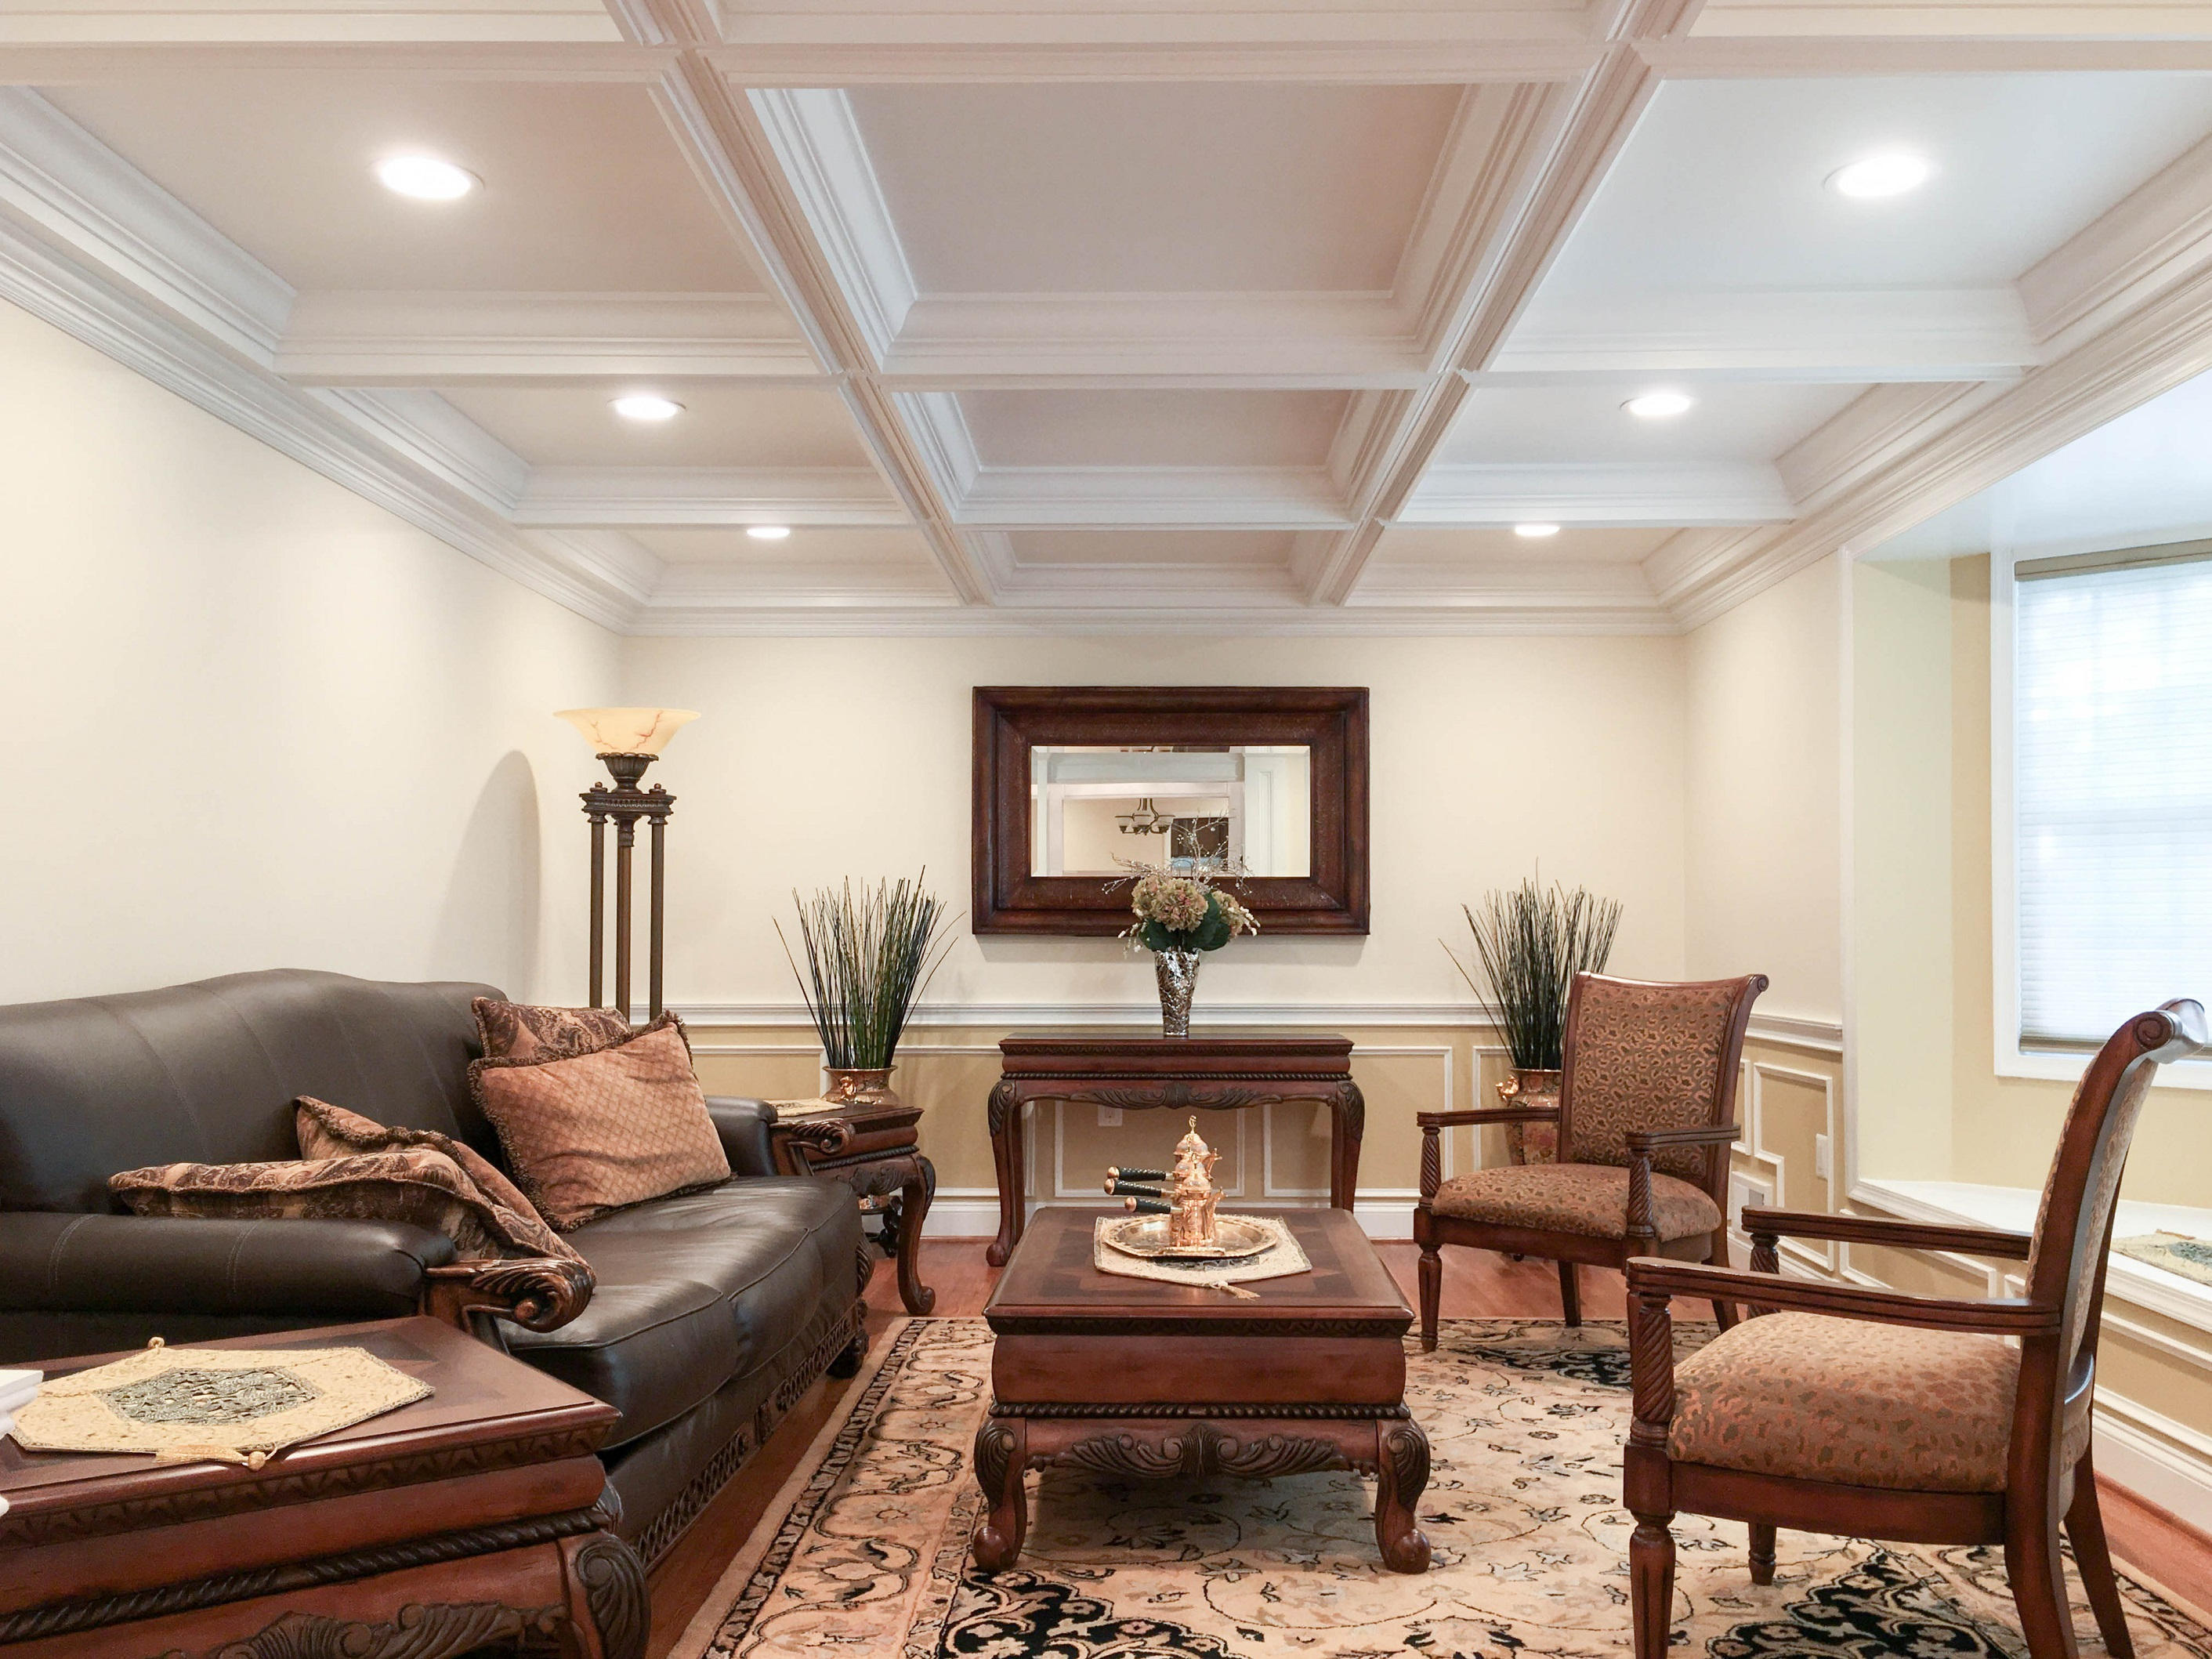 Home Remodeling Contractor in Fairfax, Virginia